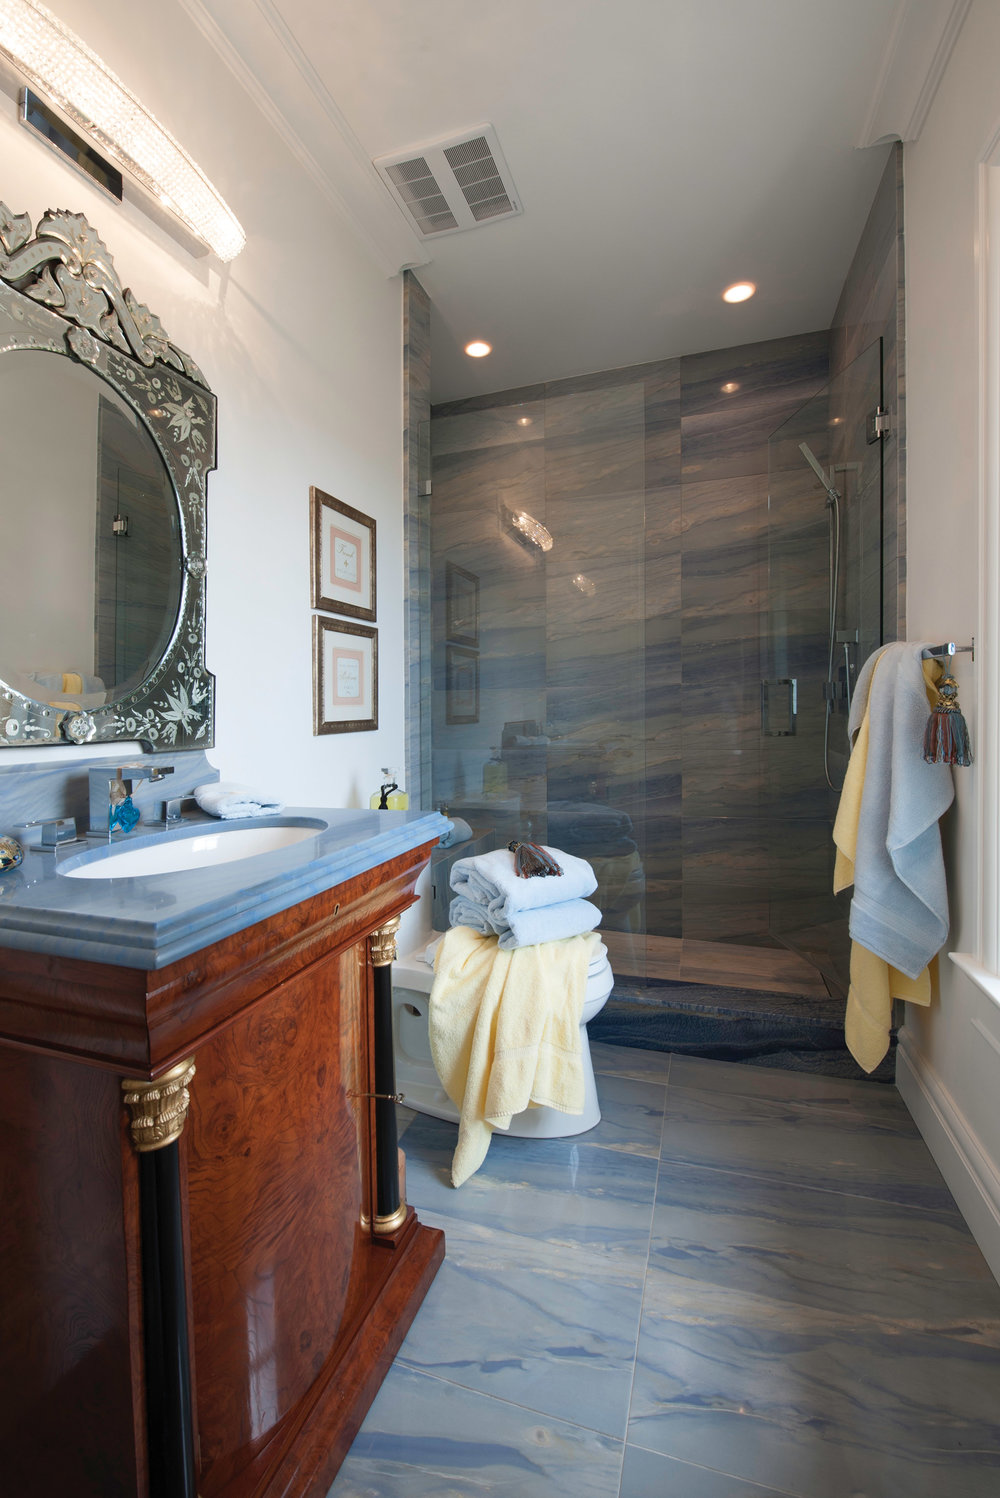 An antique buffet is repurposed as a bathroom vanity and topped with rare, highly prized blue granite.